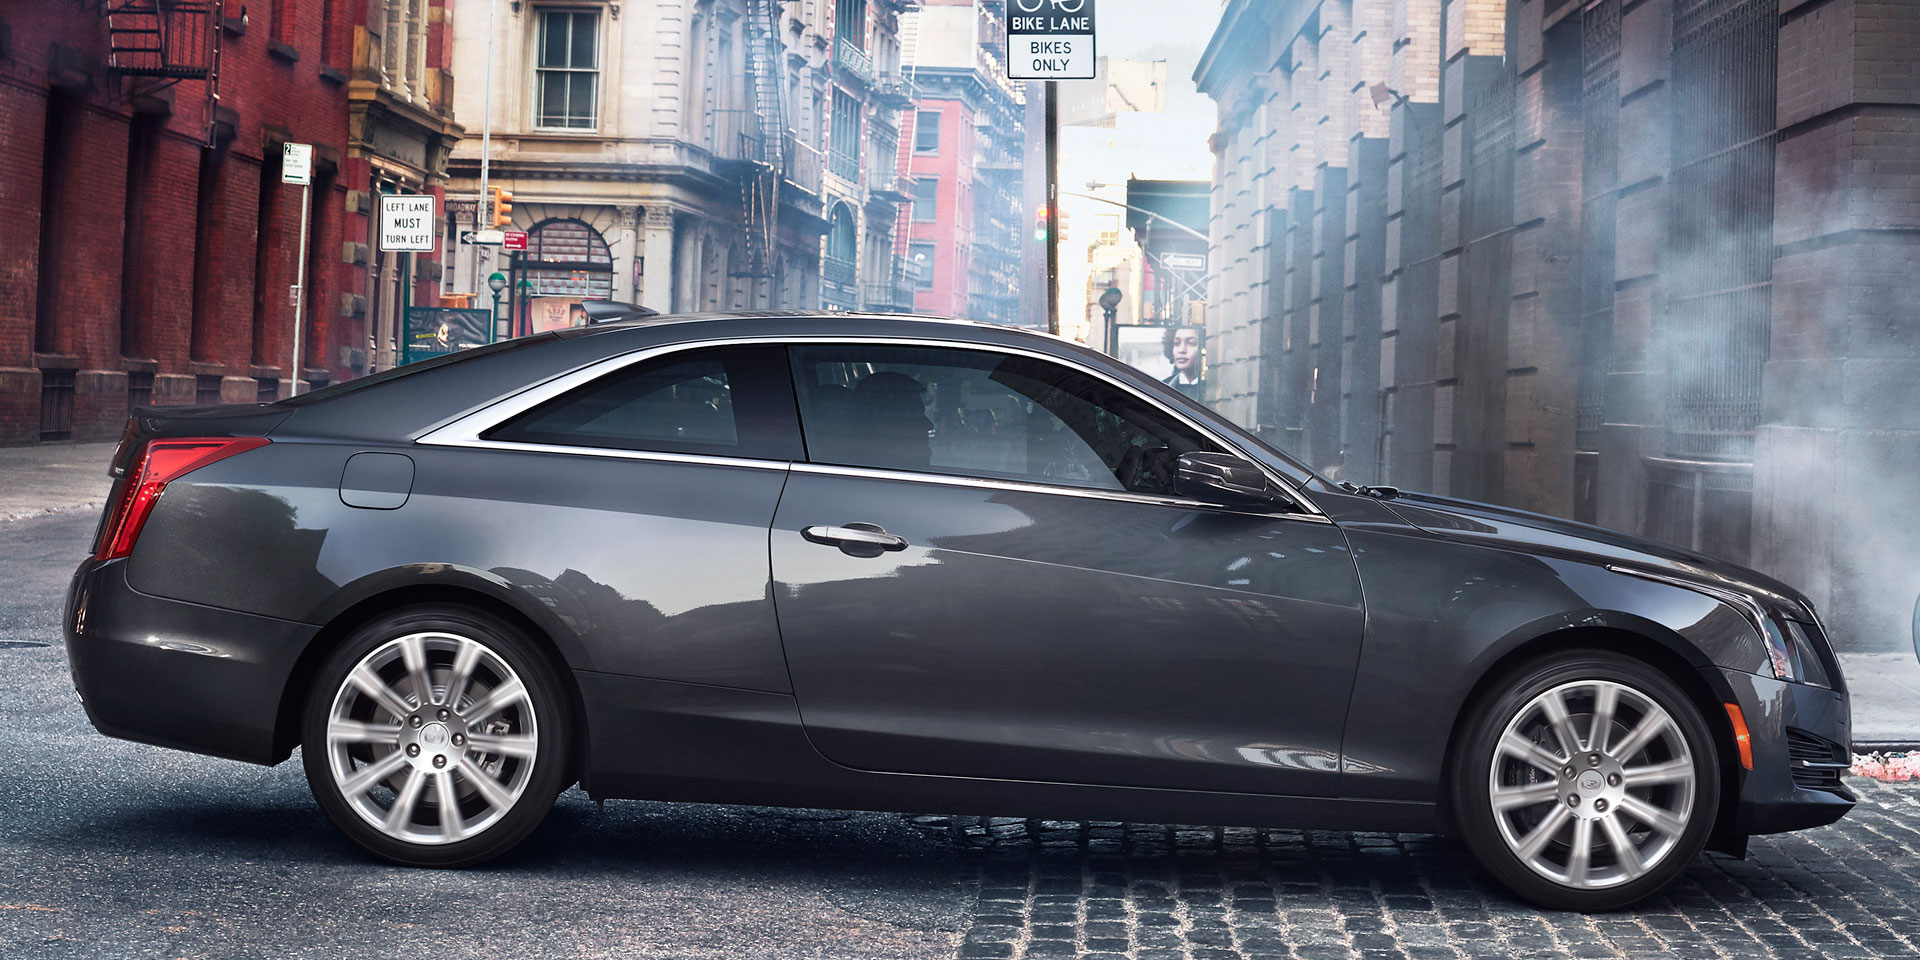 2019 - Cadillac - ATS - Vehicles on Display | Chicago Auto Show